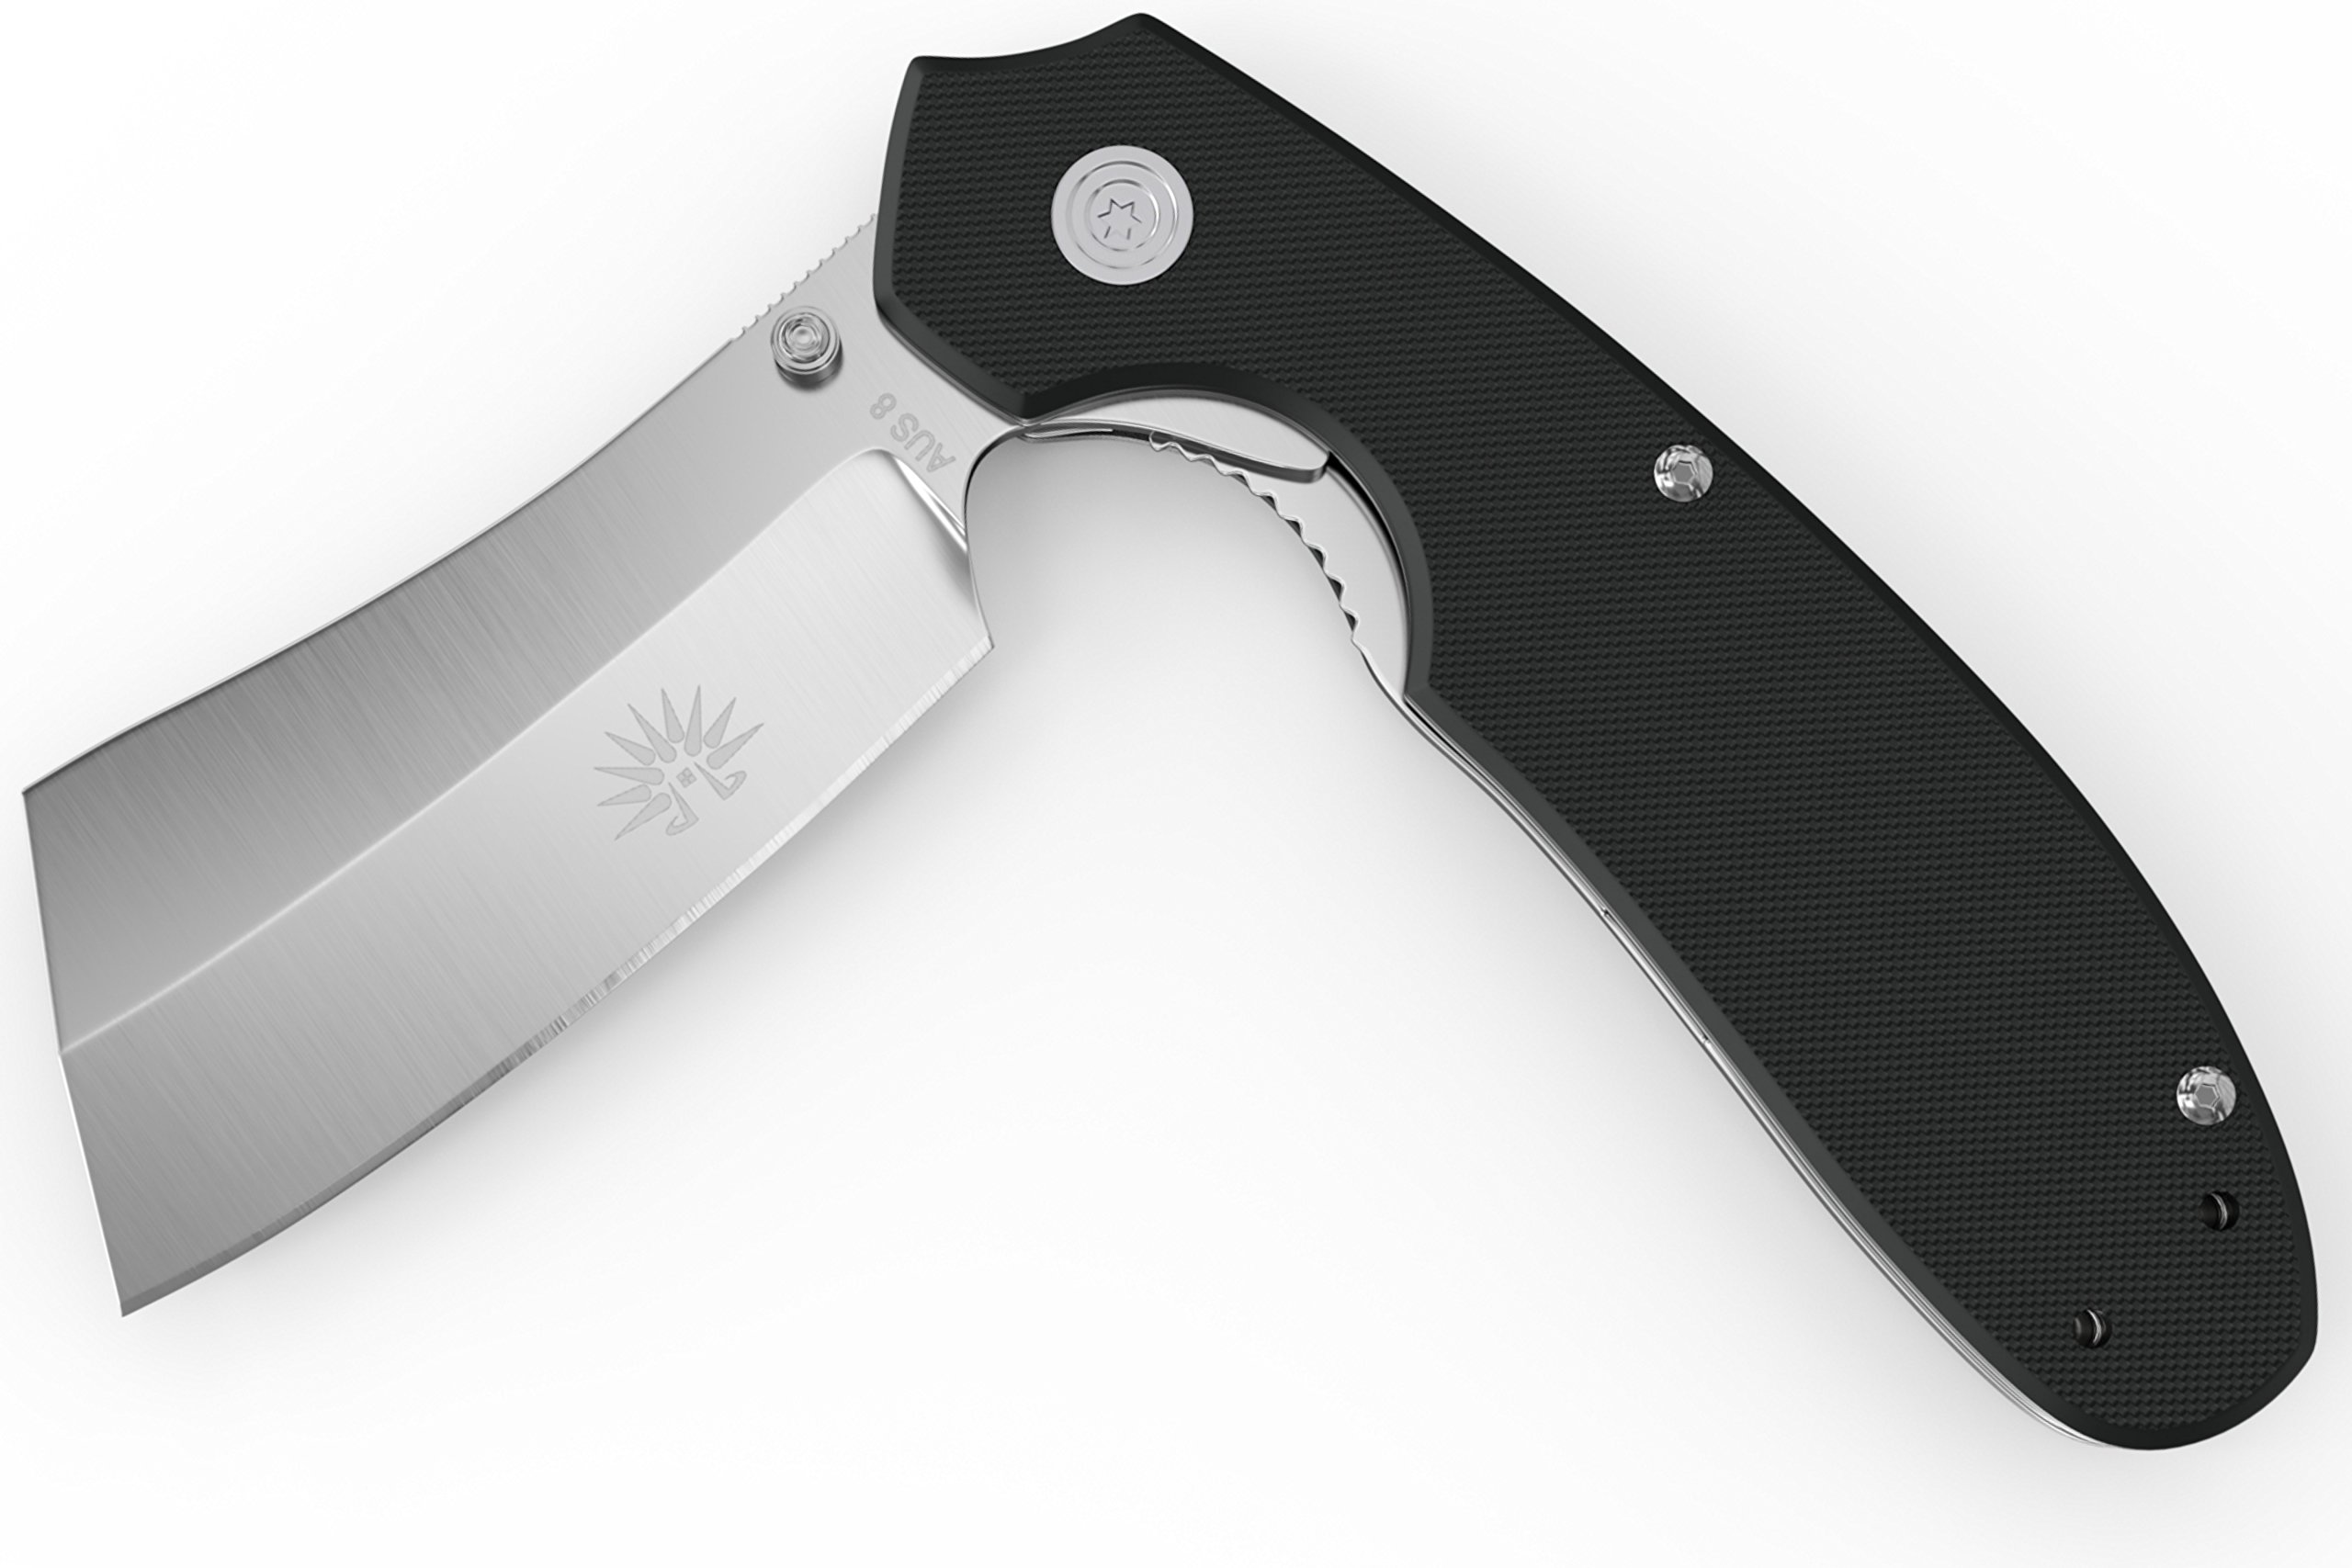 Off-Grid Knives - OG-950 Cleaver Flipper Knife - Assisted, Cryo Japanese AUS-8 Blade, G10 Handle, Tip-Up Left or Right Hand Deep Pocket Carry by Off-Grid Knives (Image #7)